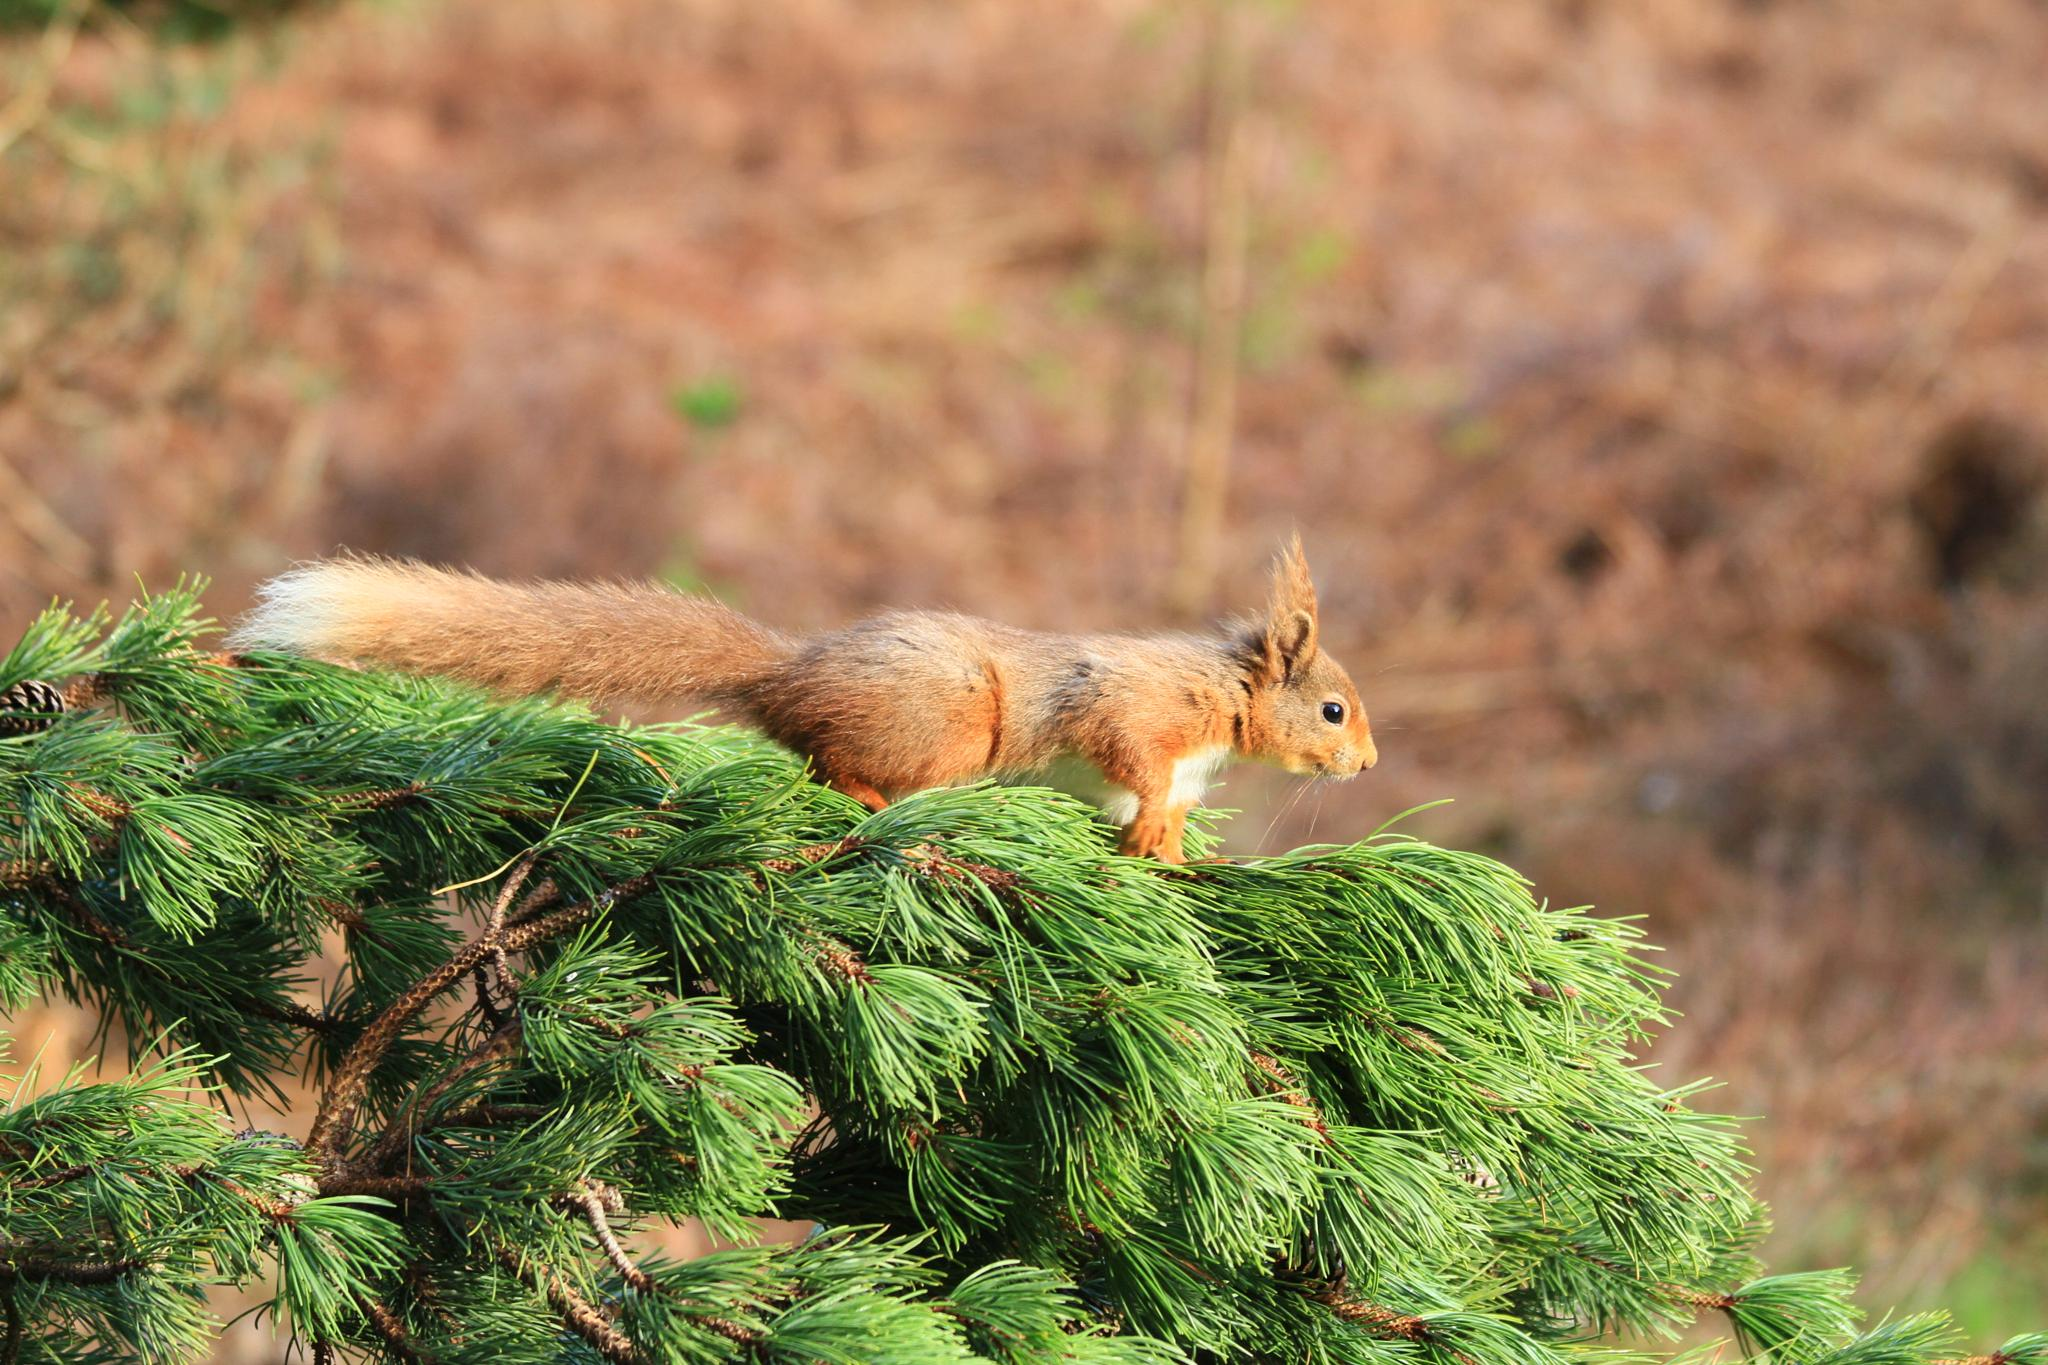 Red Squirrel by rsww19